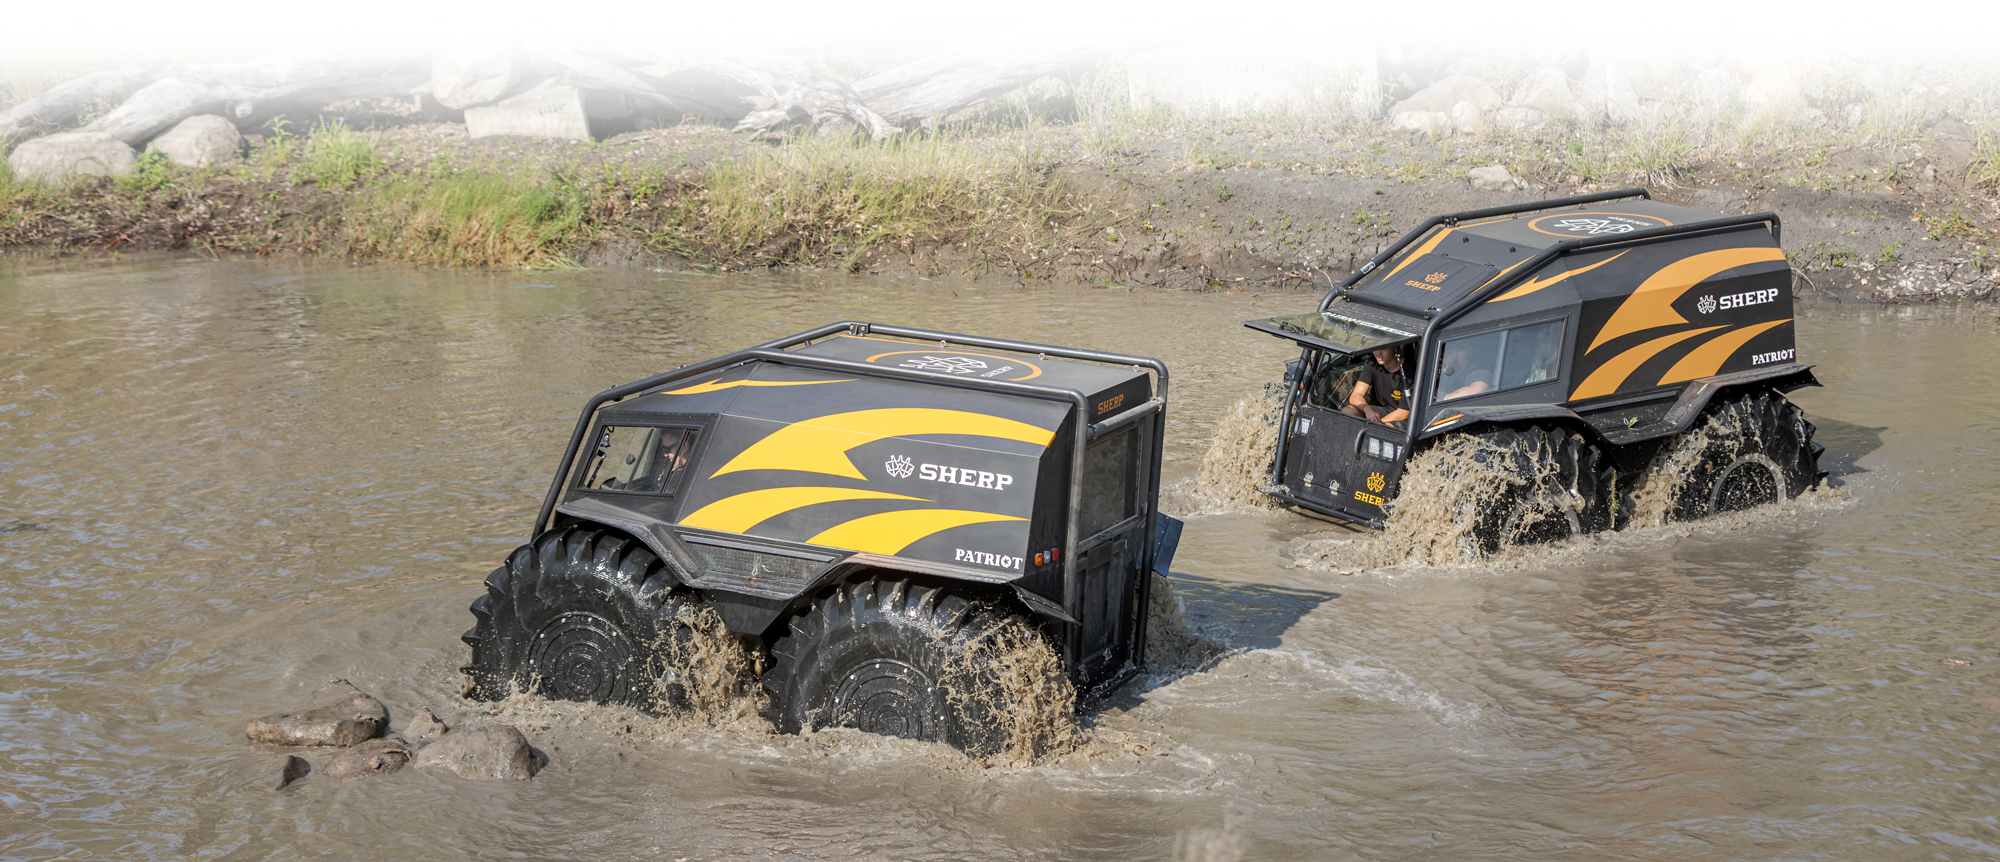 SHERP Australia and New Zealand wading through water